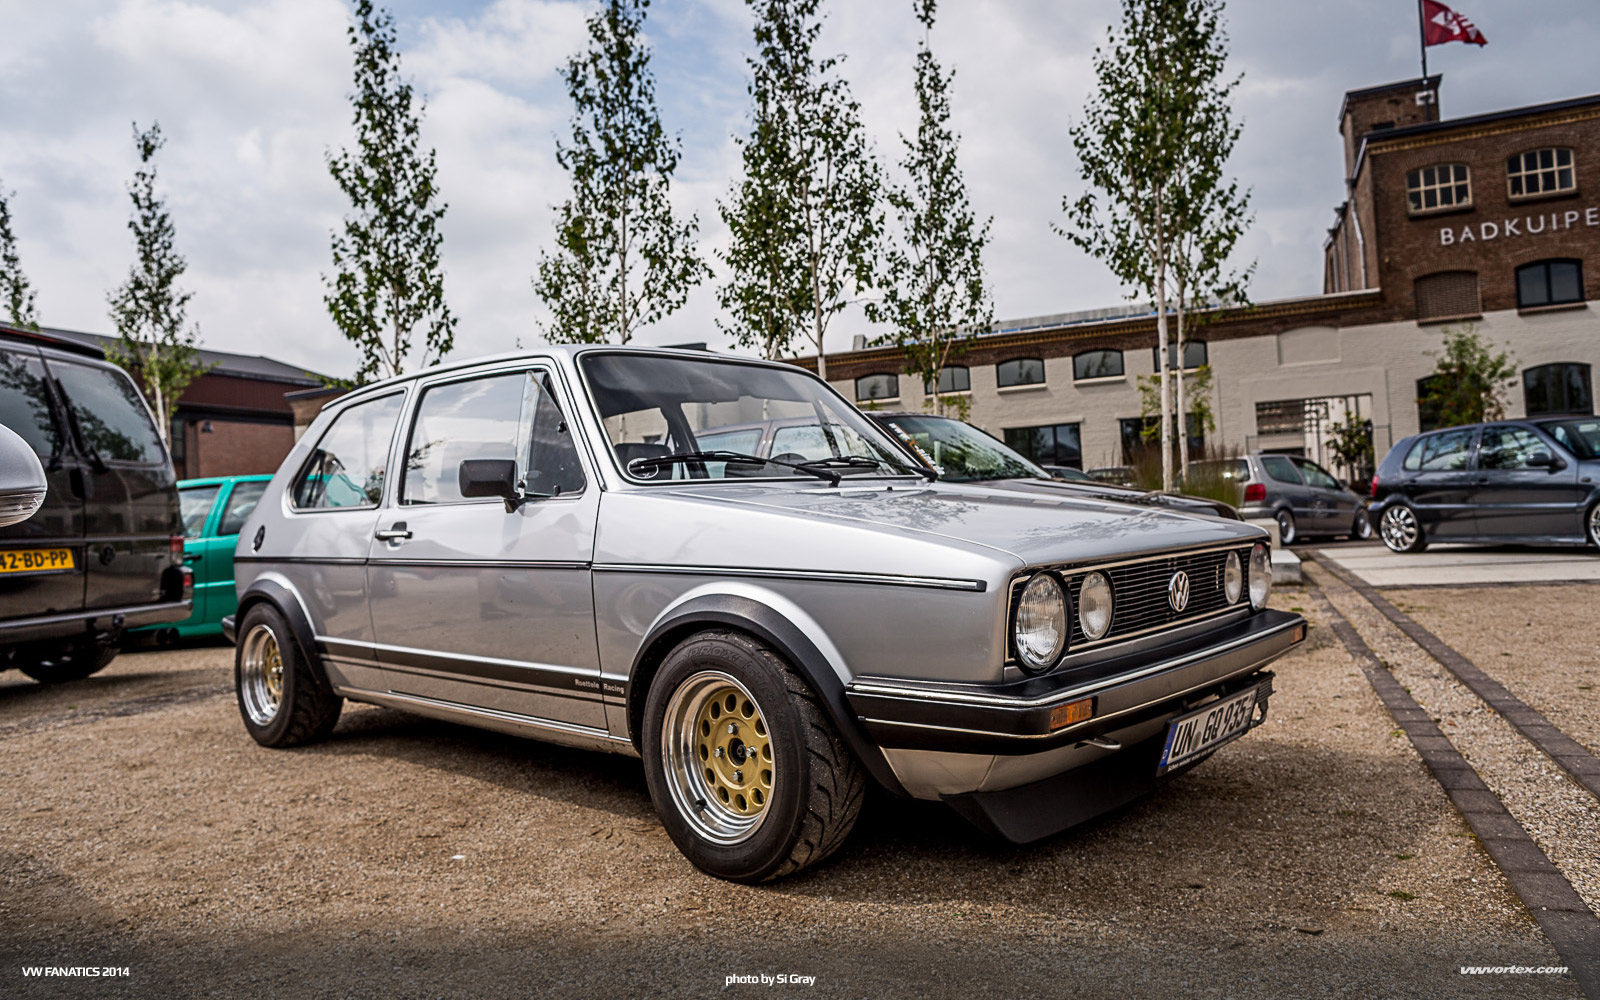 VWFanatics-2014-Si-Gray-457